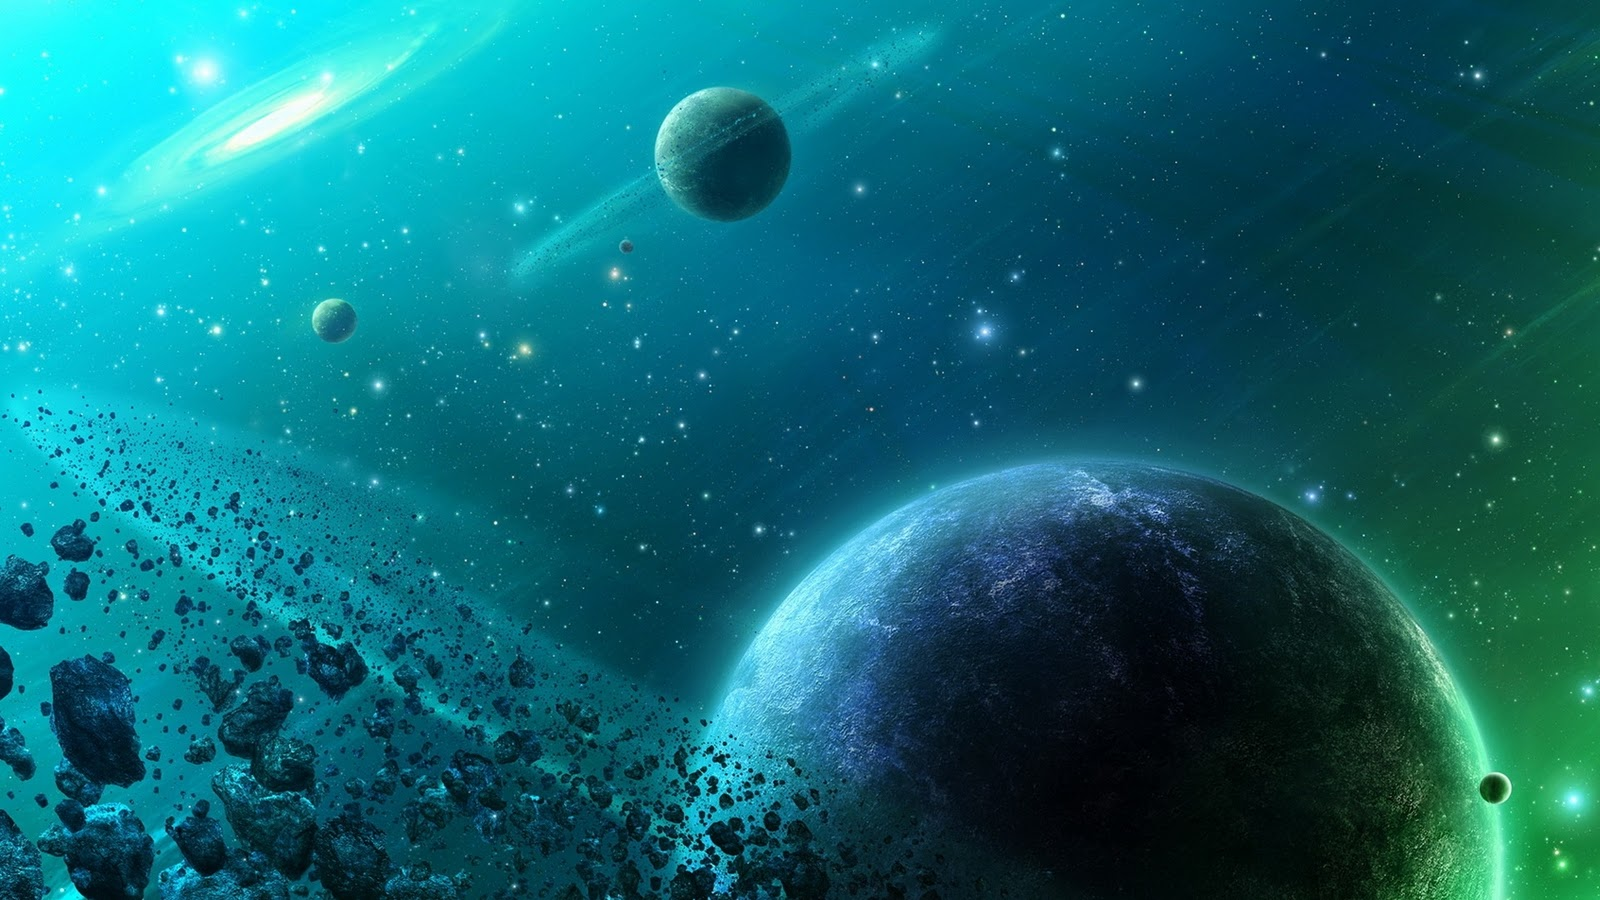 Space HD Desktop Wallpapers 1600x900